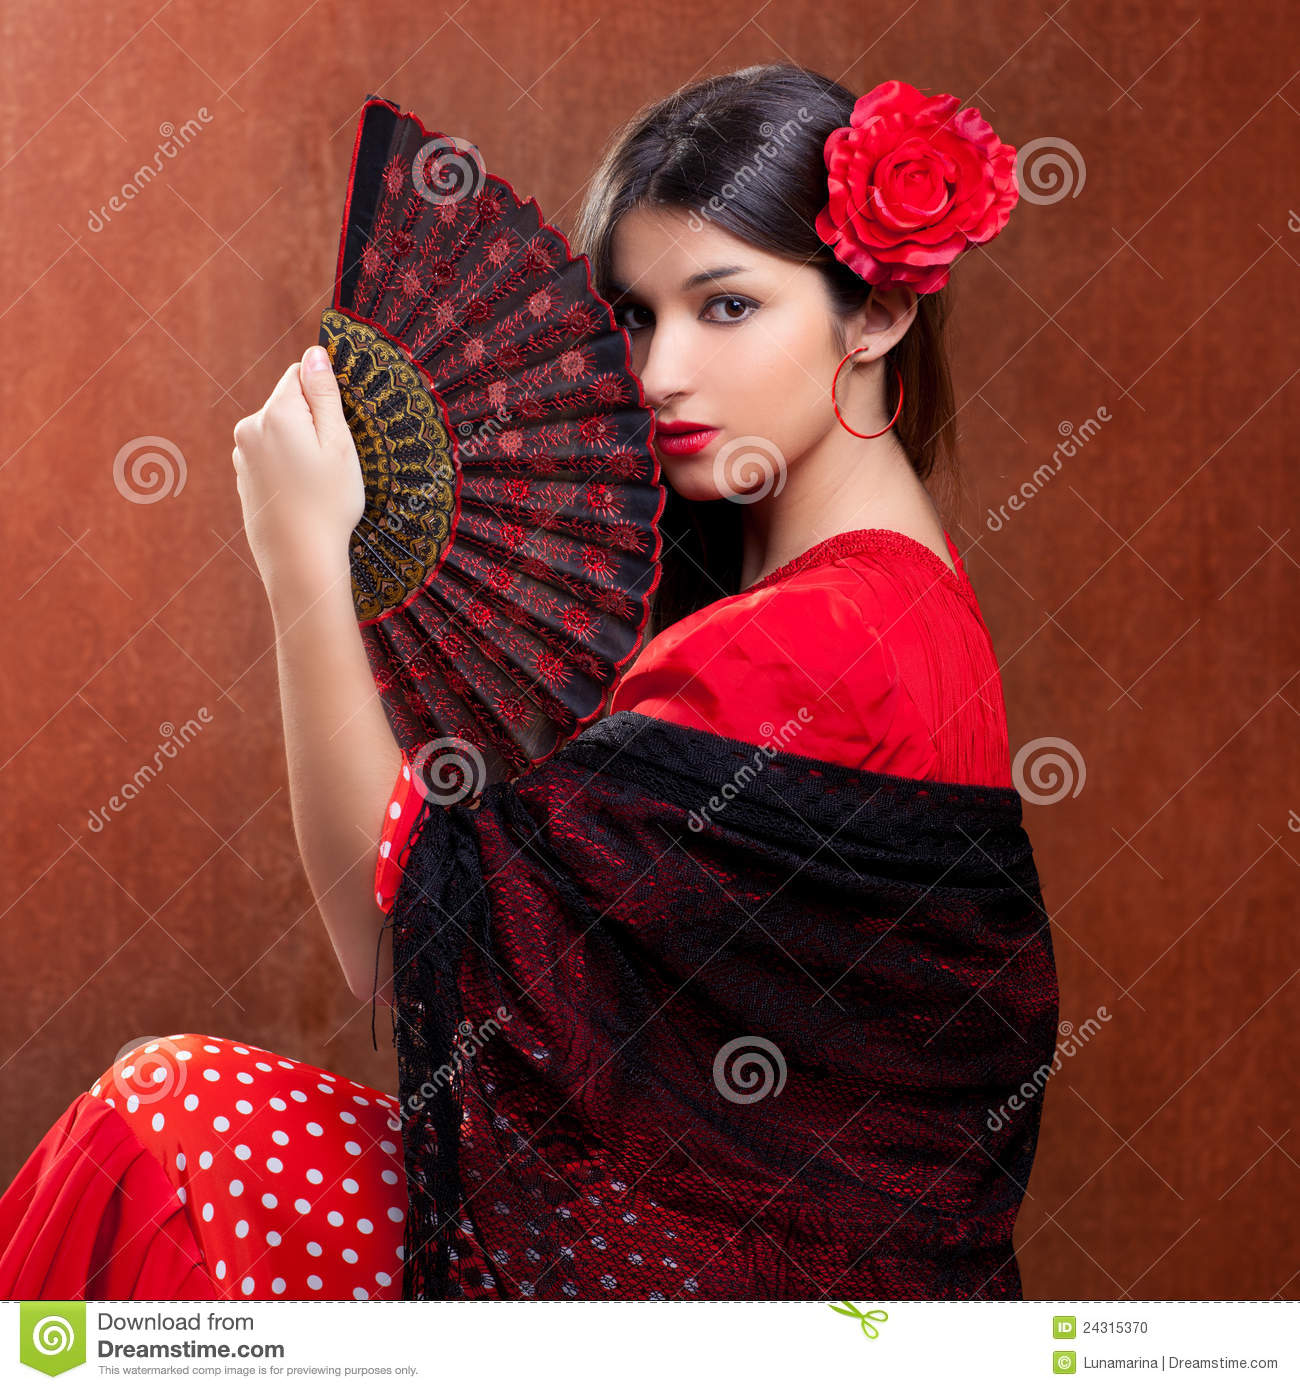 flamenco dating The largest site in the world for finding a dance partner - over 60,000 dancers our world-wide directory covers ballroom, salsa, swing, and more for both competitive and social dancing.